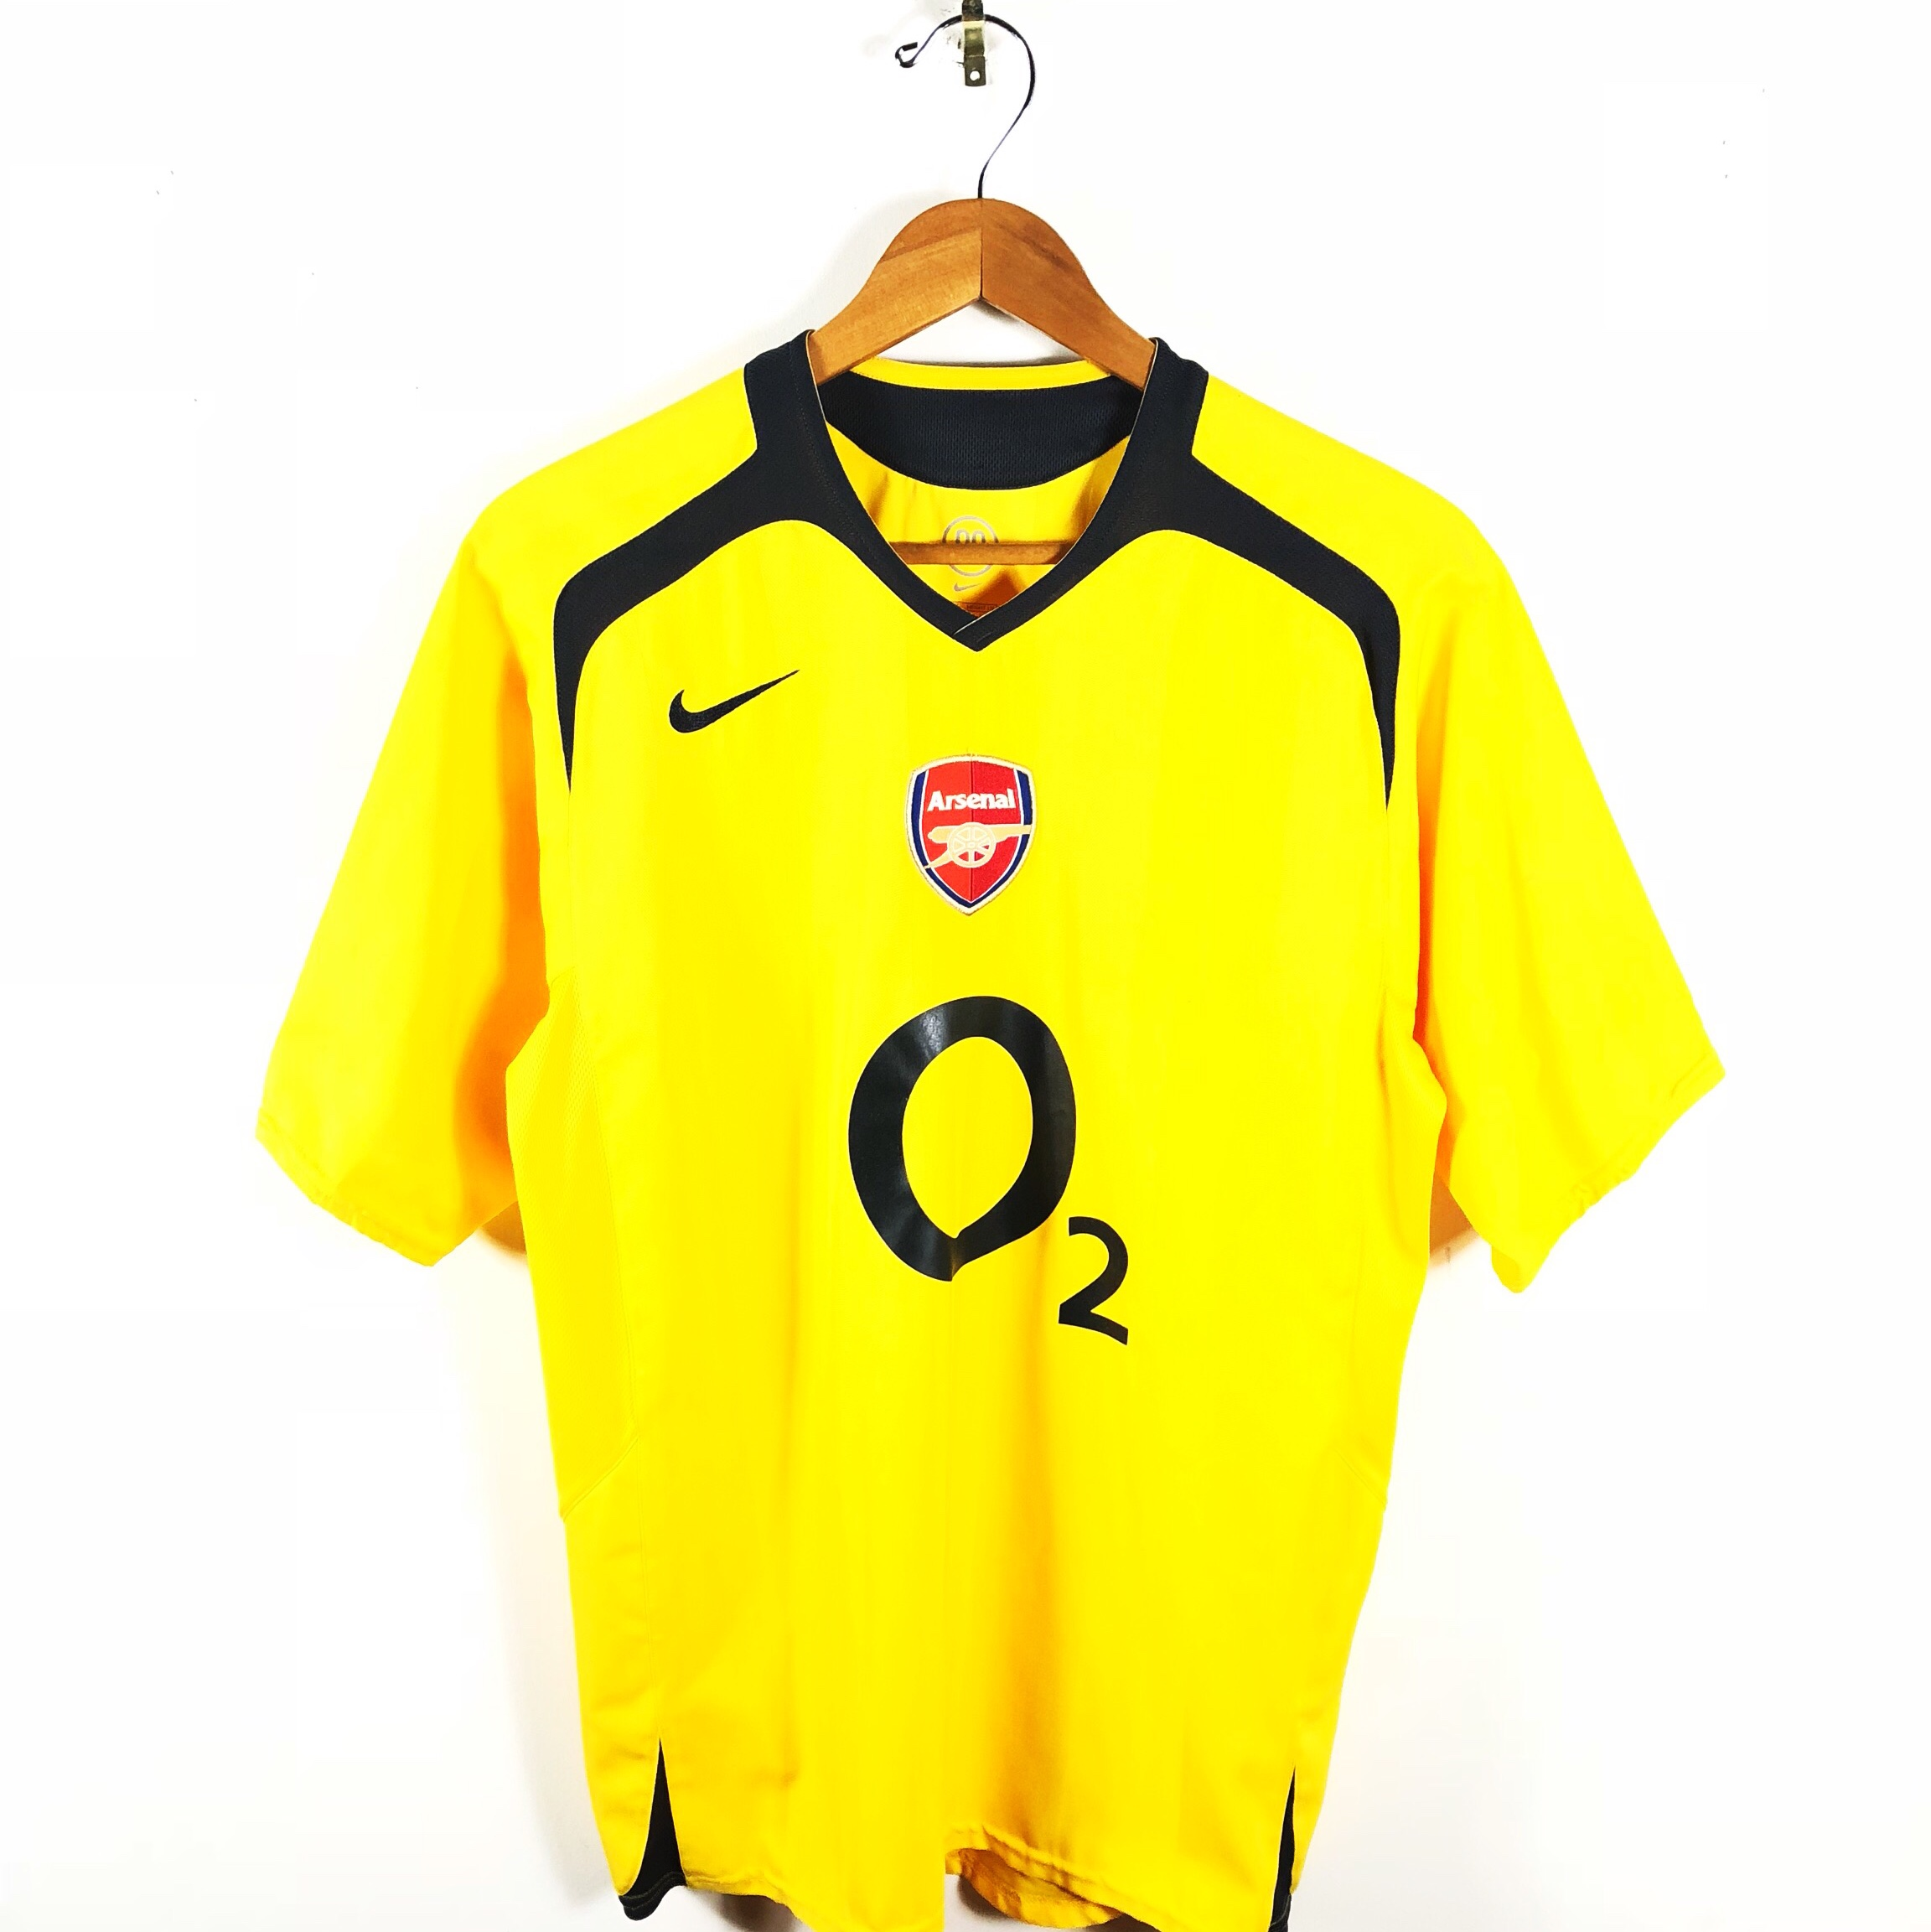 newest 94bc0 d4ed2 Nike Vintage Arsenal O2 Yellow Soccer Jersey Size... - Depop